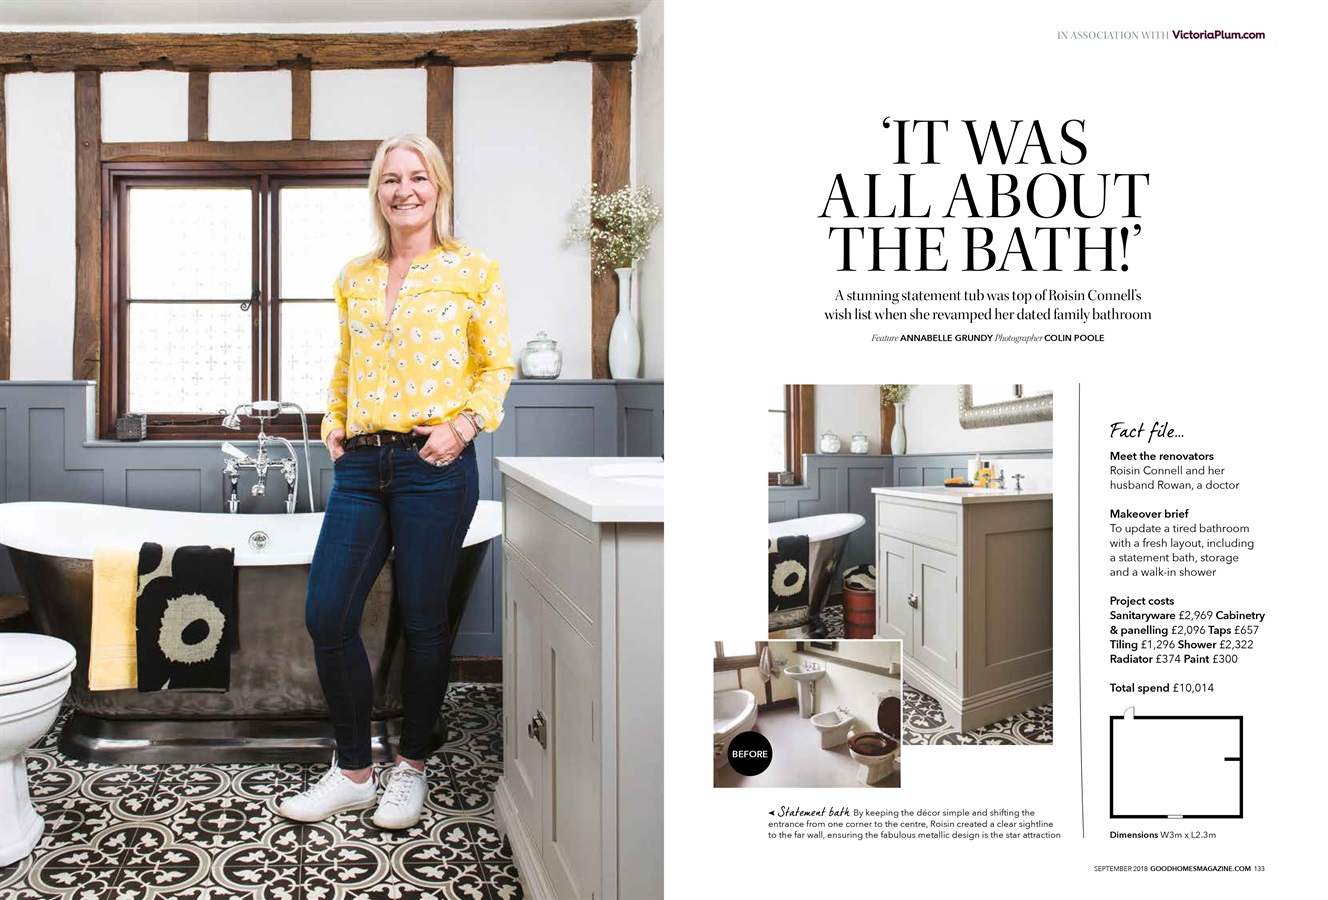 A Burlanes Bathroom Featured In Good Homes Magazine - Burlanes bespoke bathroom featured in Good Homes Magazine September 2018